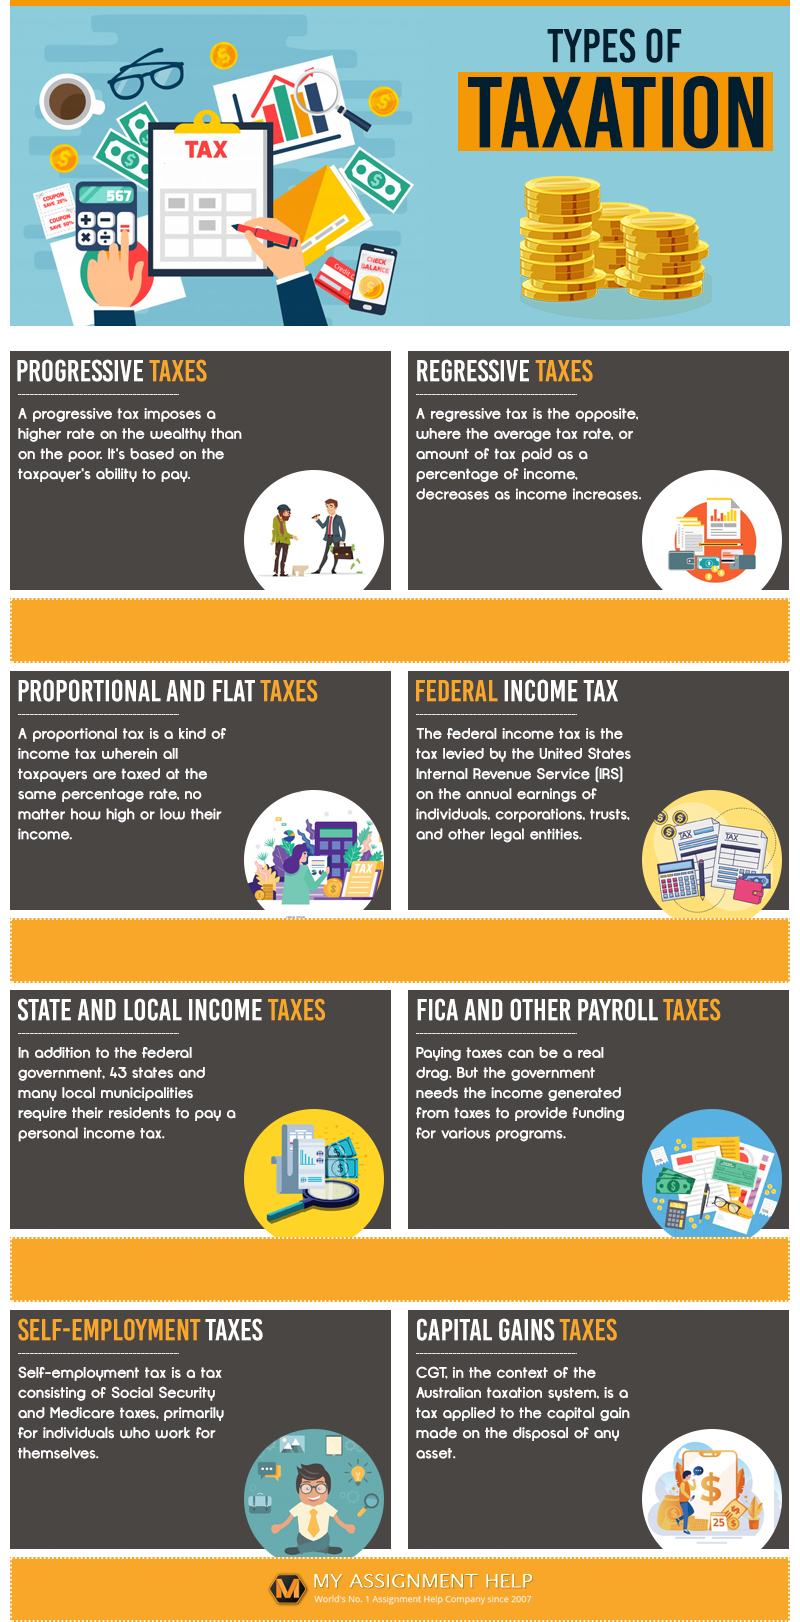 Types-of-Taxation